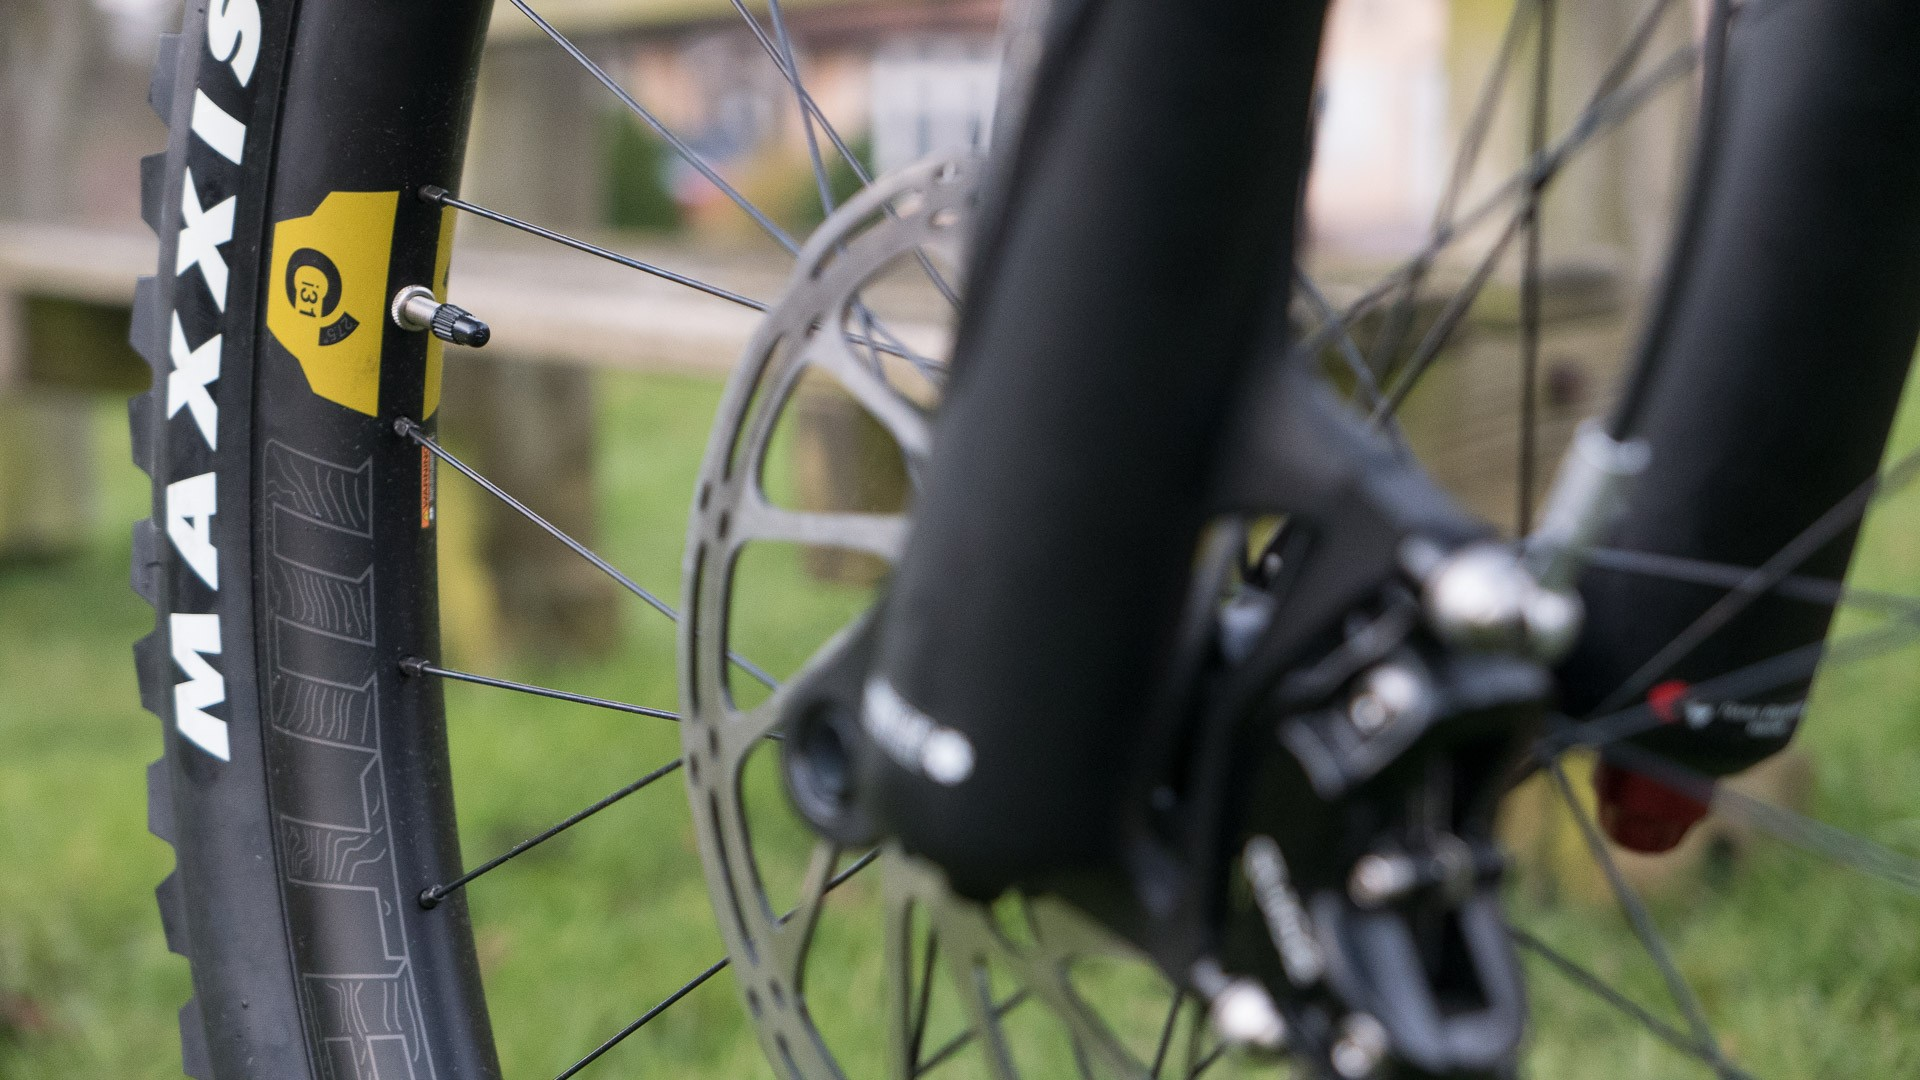 Super wide WTB carbon hoops help give an aggressive profile to the tyres